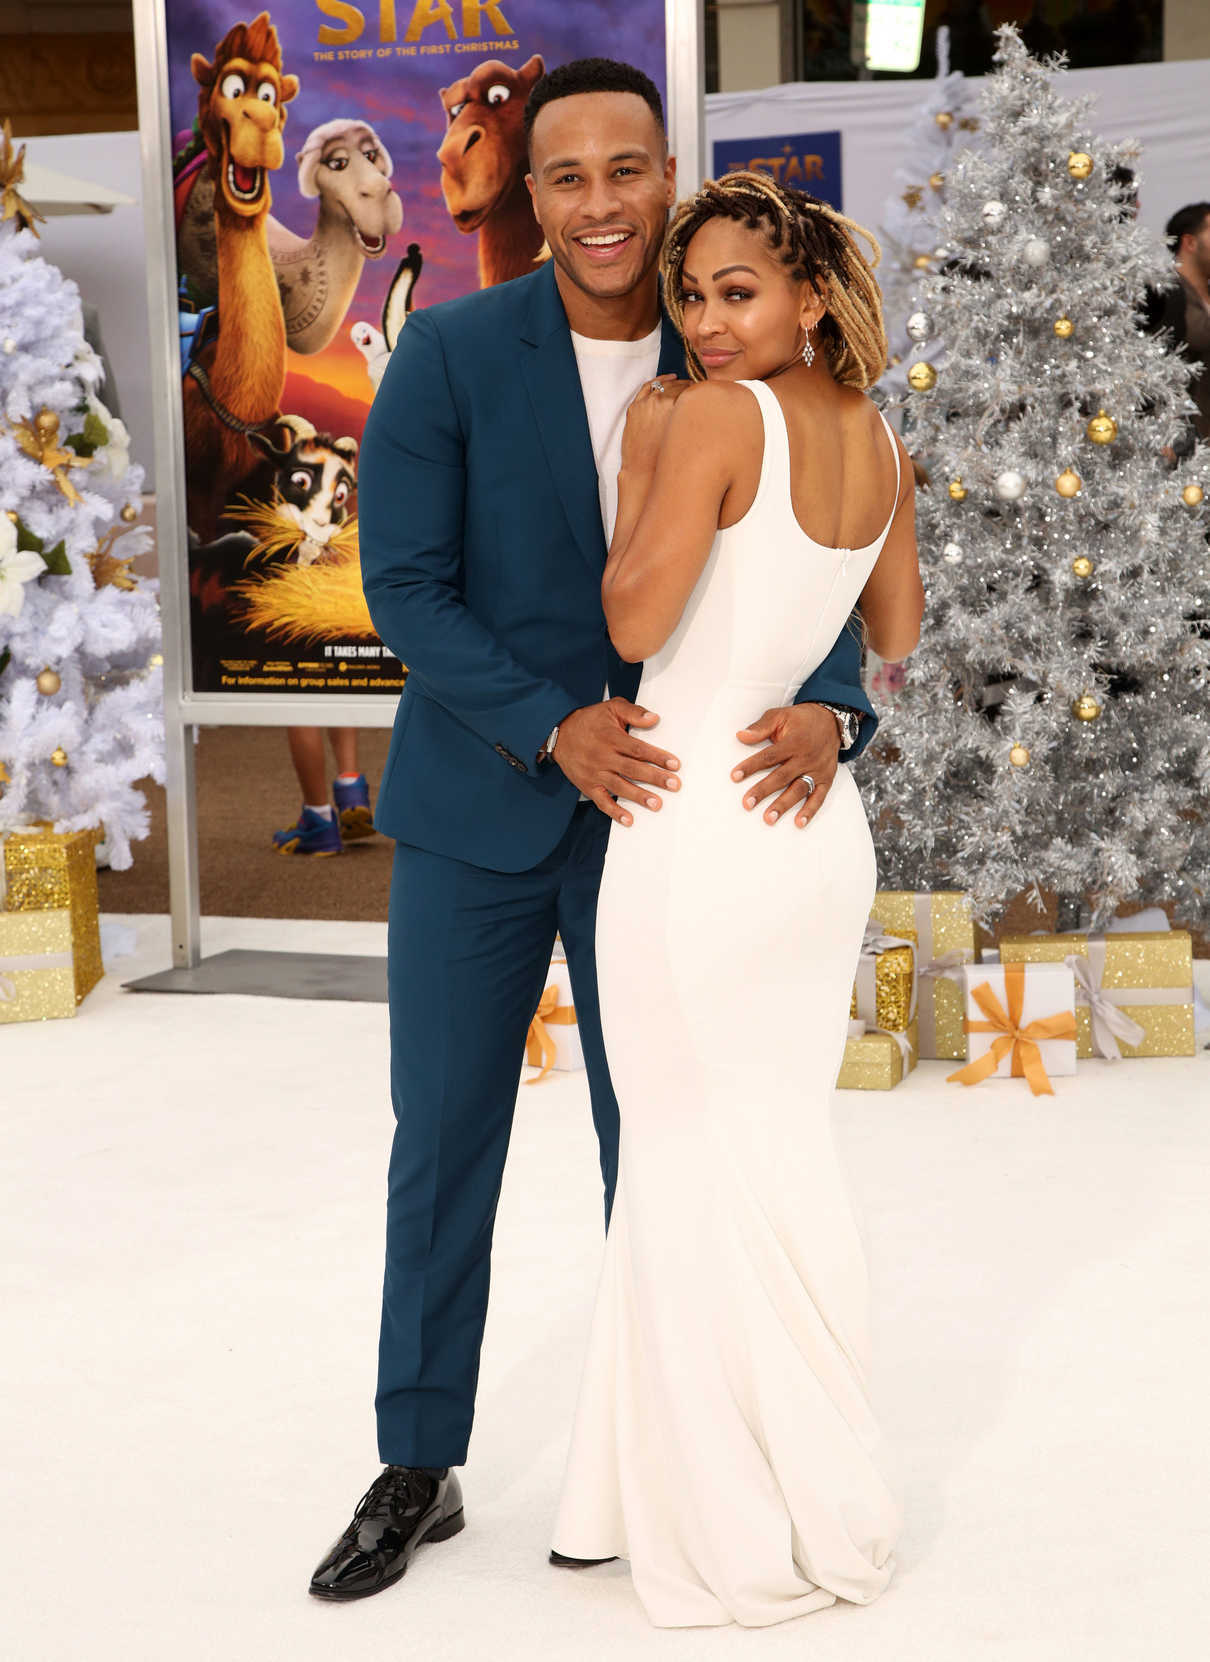 Meagan Good at The Star Premiere at the Regency Village Theatre in Los Angeles 11/12/2017-4